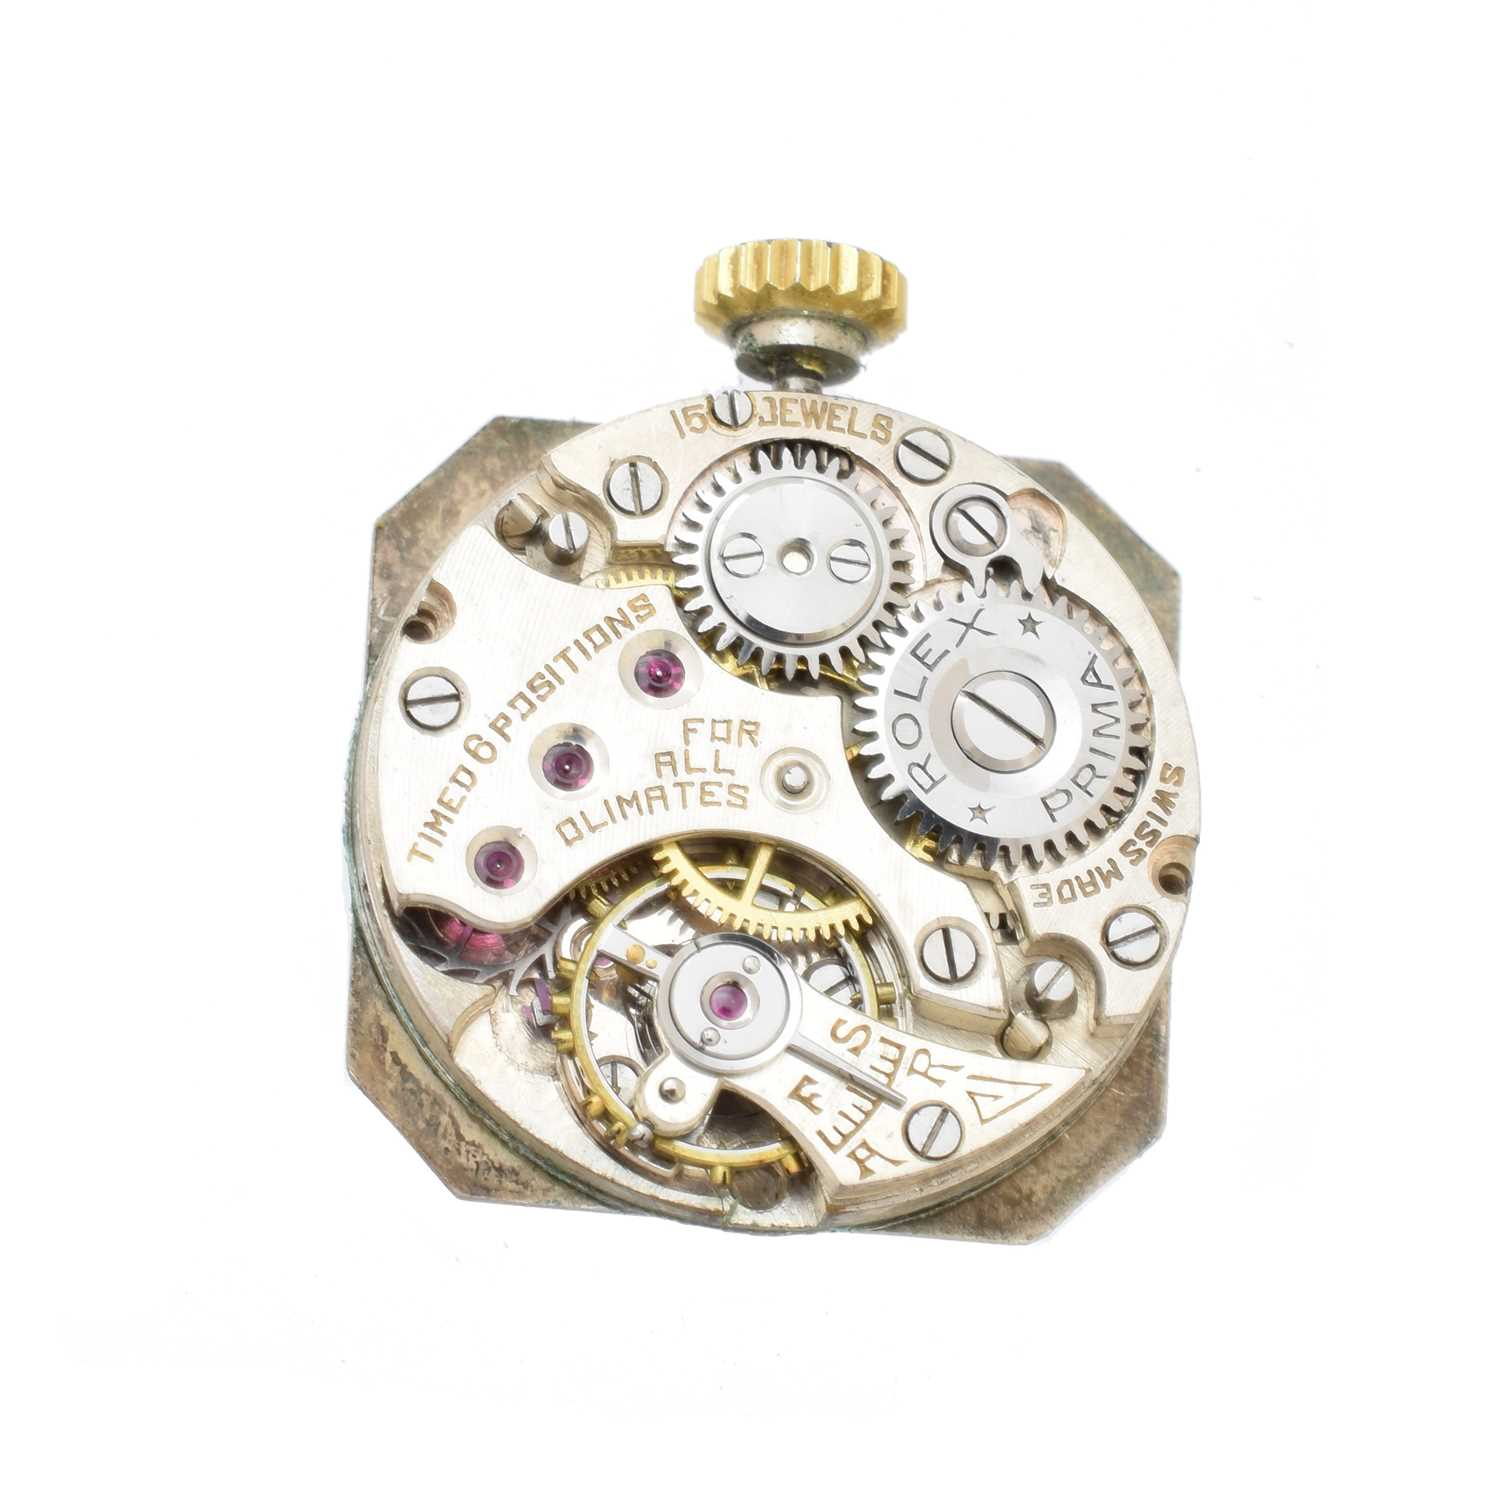 An early 20th century 18ct gold Rolex watch, - Image 5 of 5